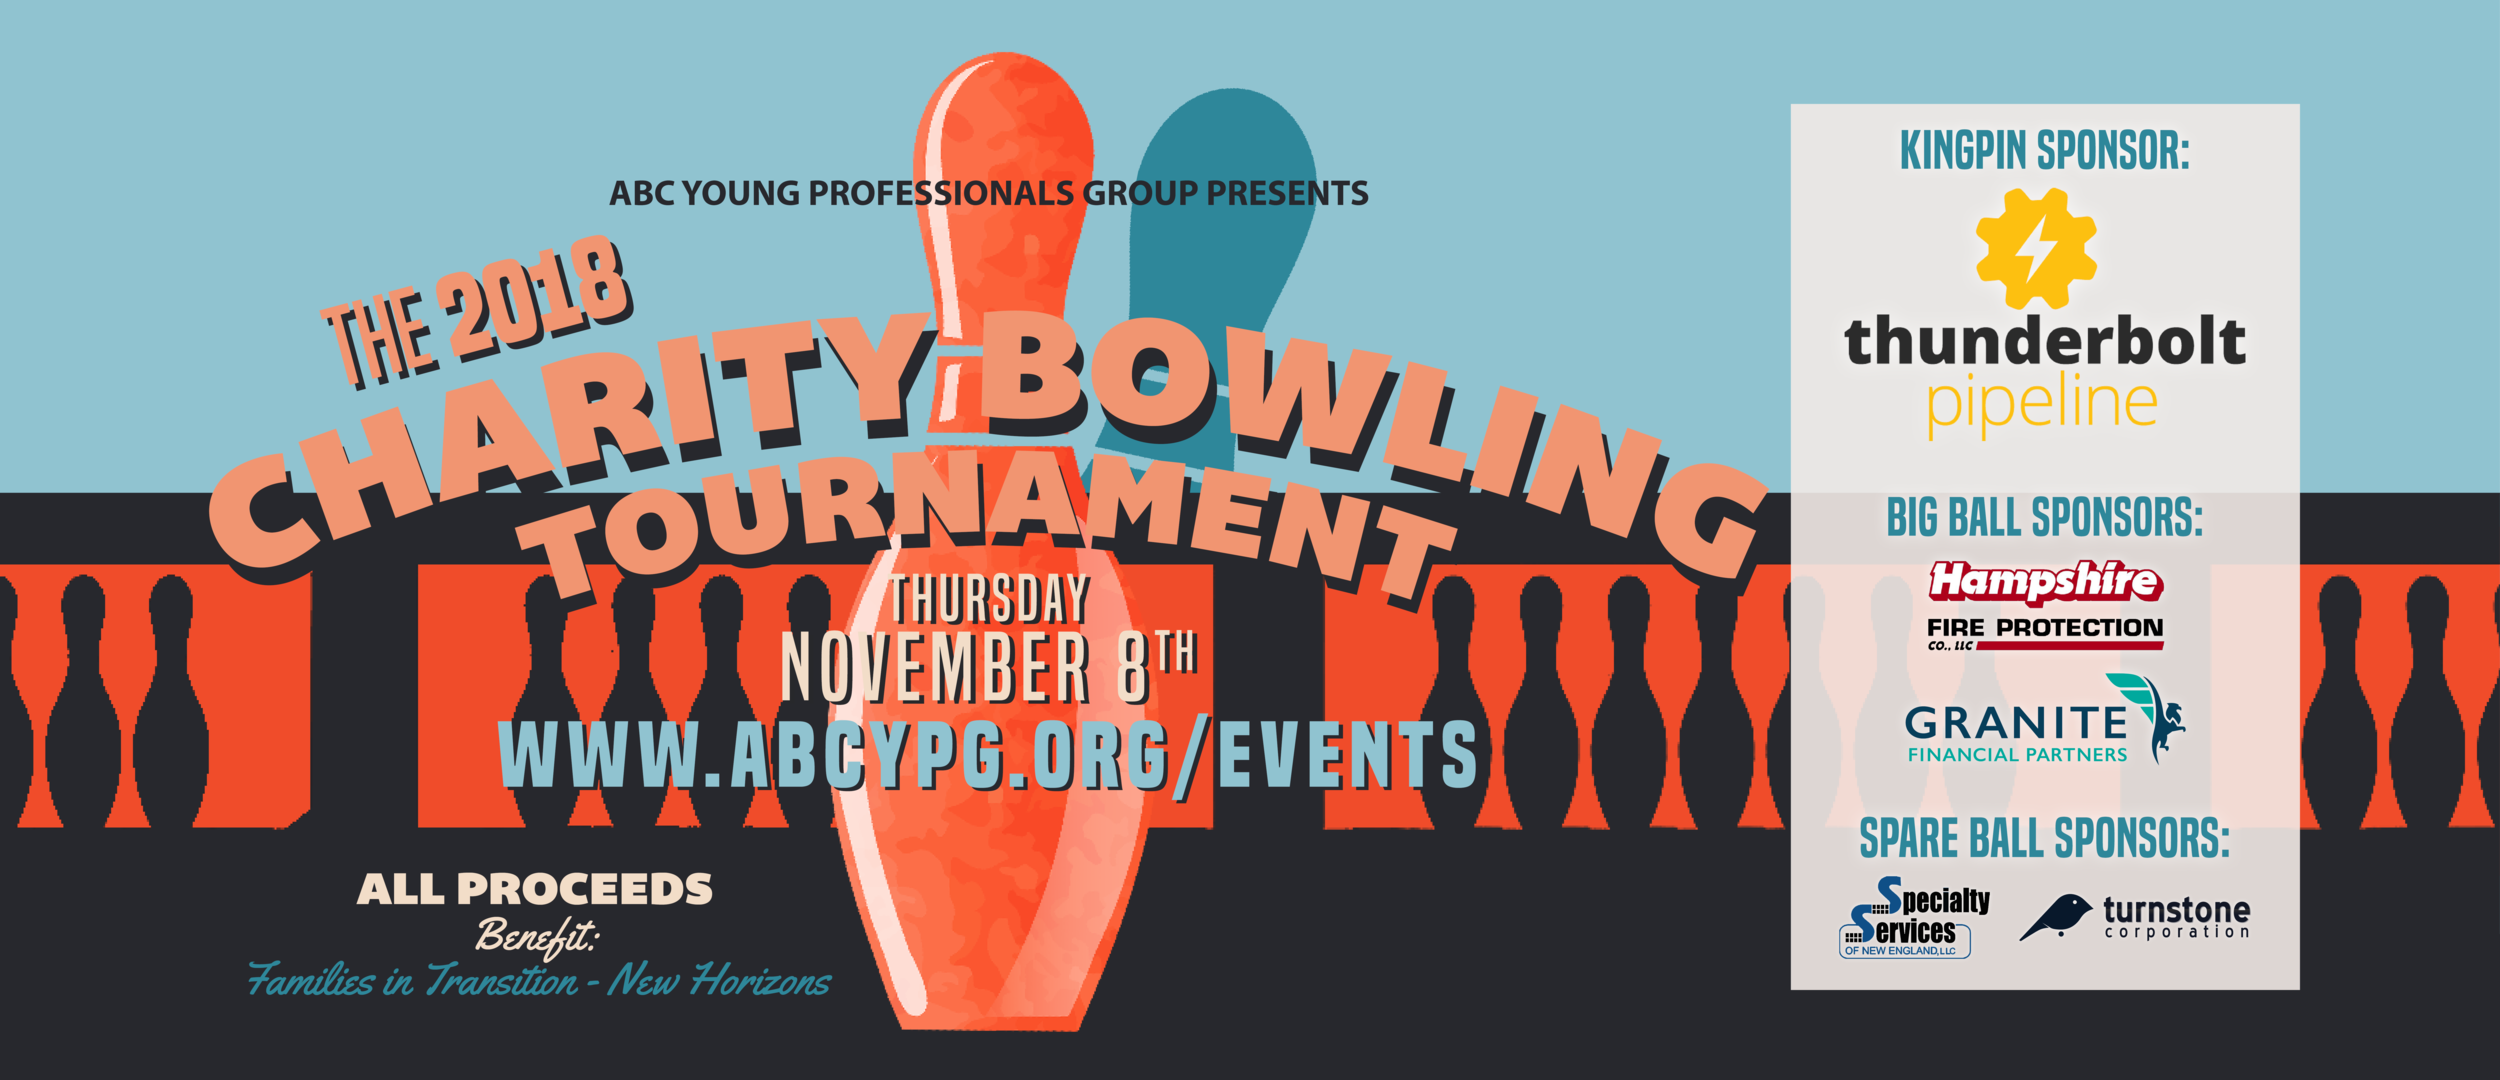 Free Transition Workshop In Concord >> Abc Ypg 2018 Charity Bowling Tournament Abc Young Professionals Group